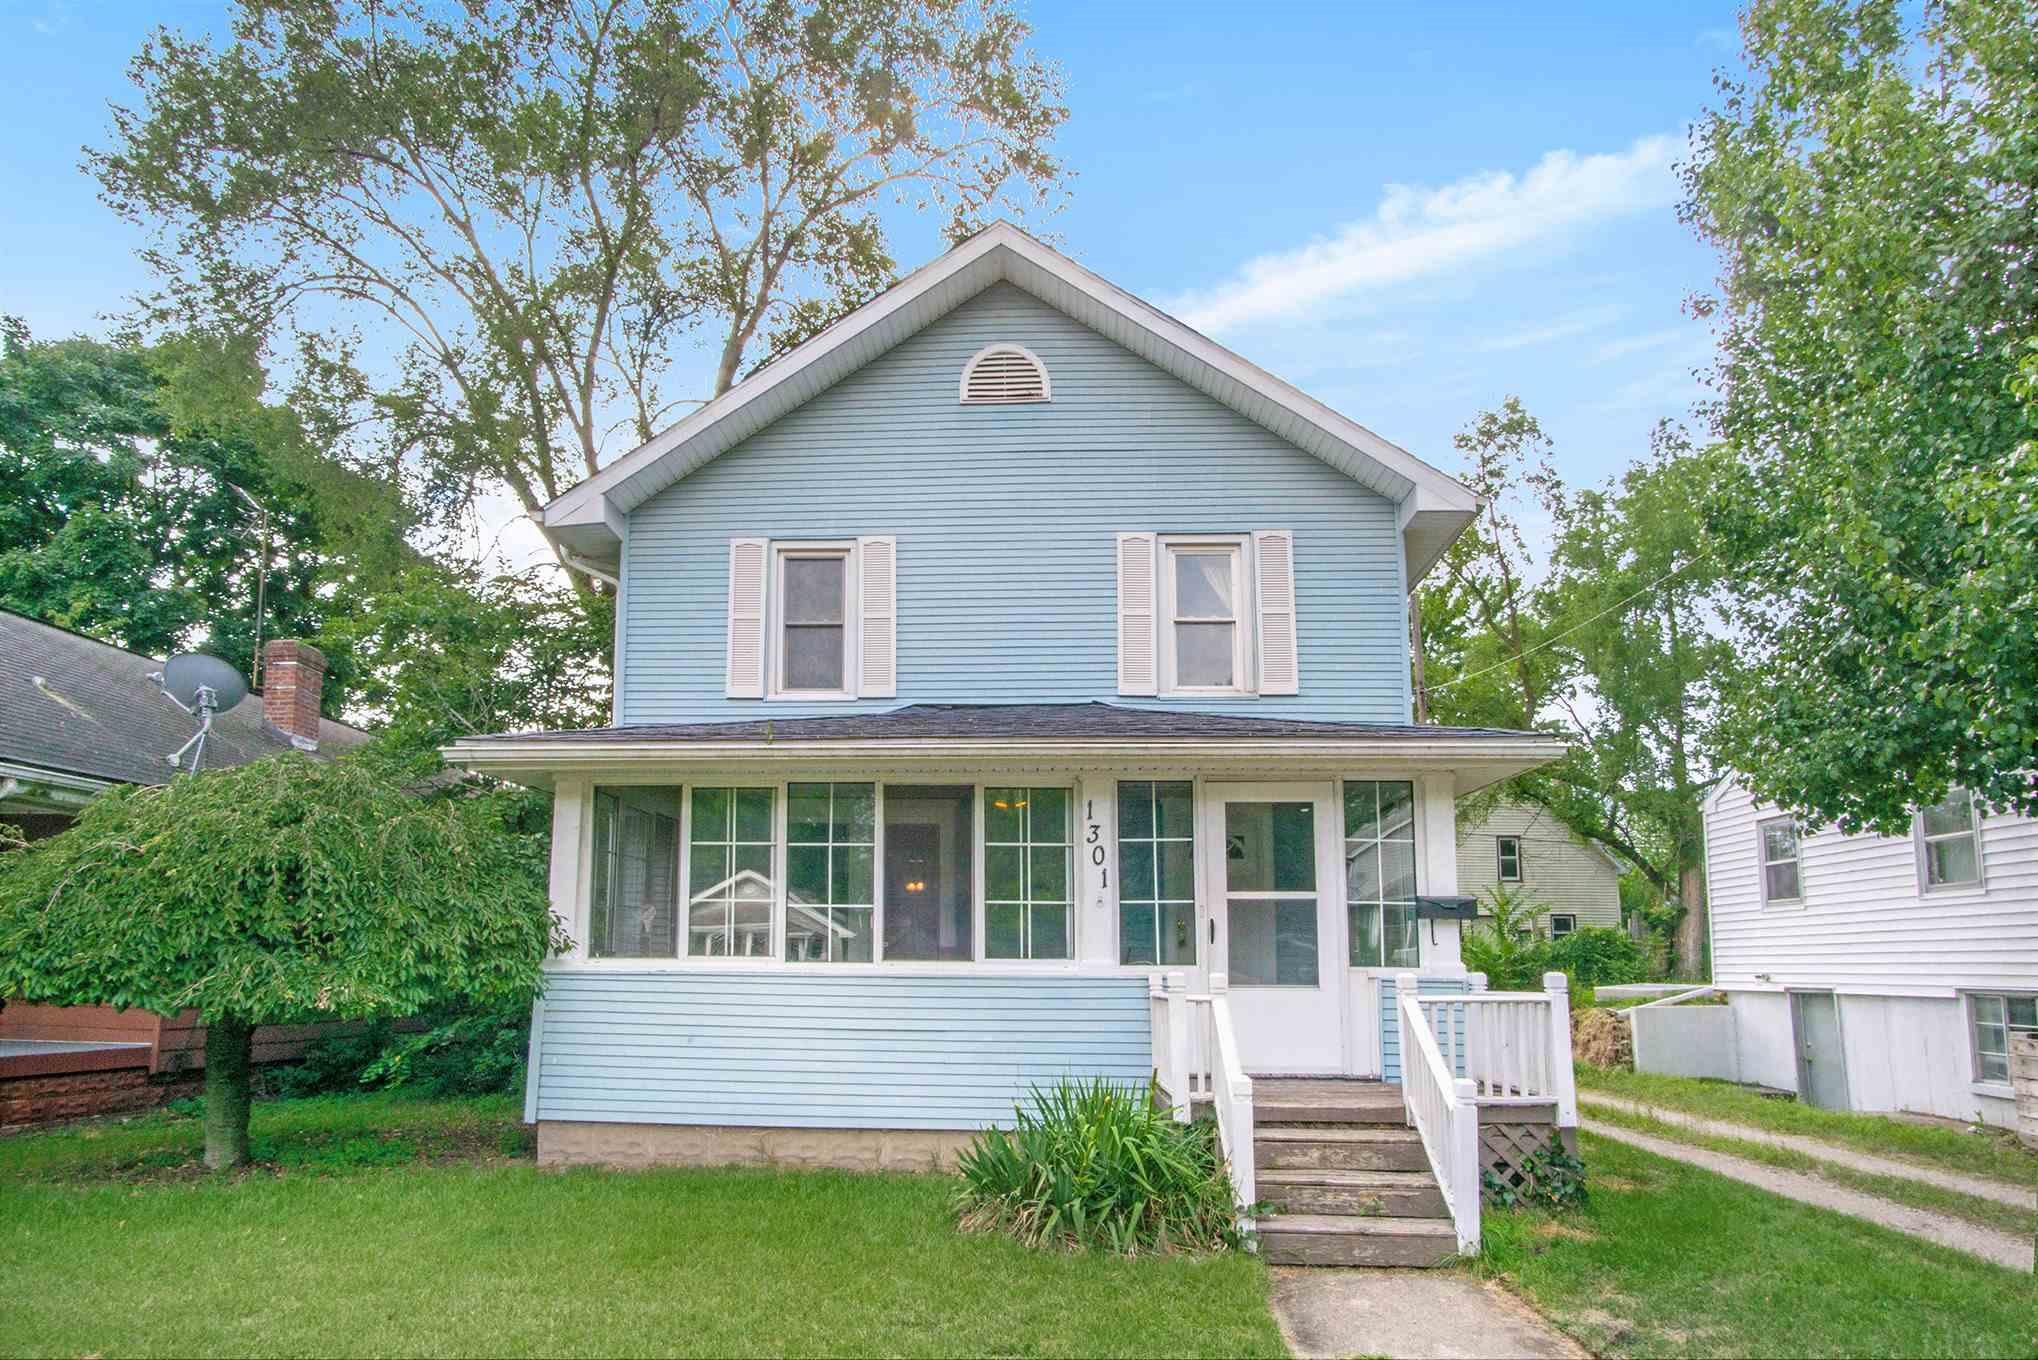 1301 S 30TH South Bend, IN 46615